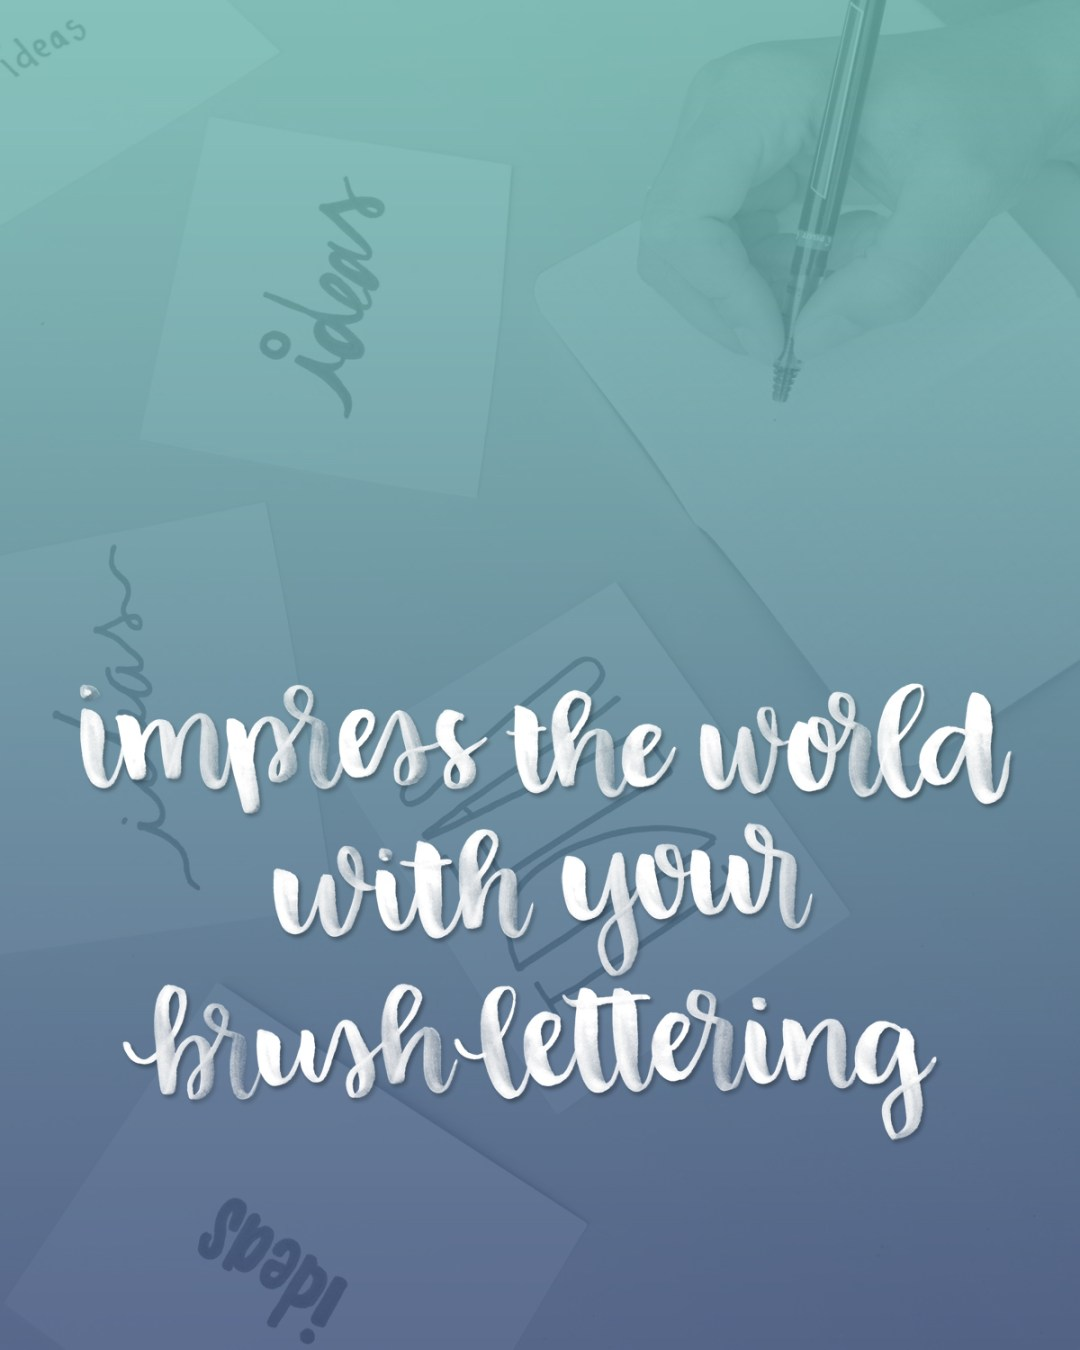 Over 60 Ways to Impress Your Friends with Brush Lettering - www.randomolive.com